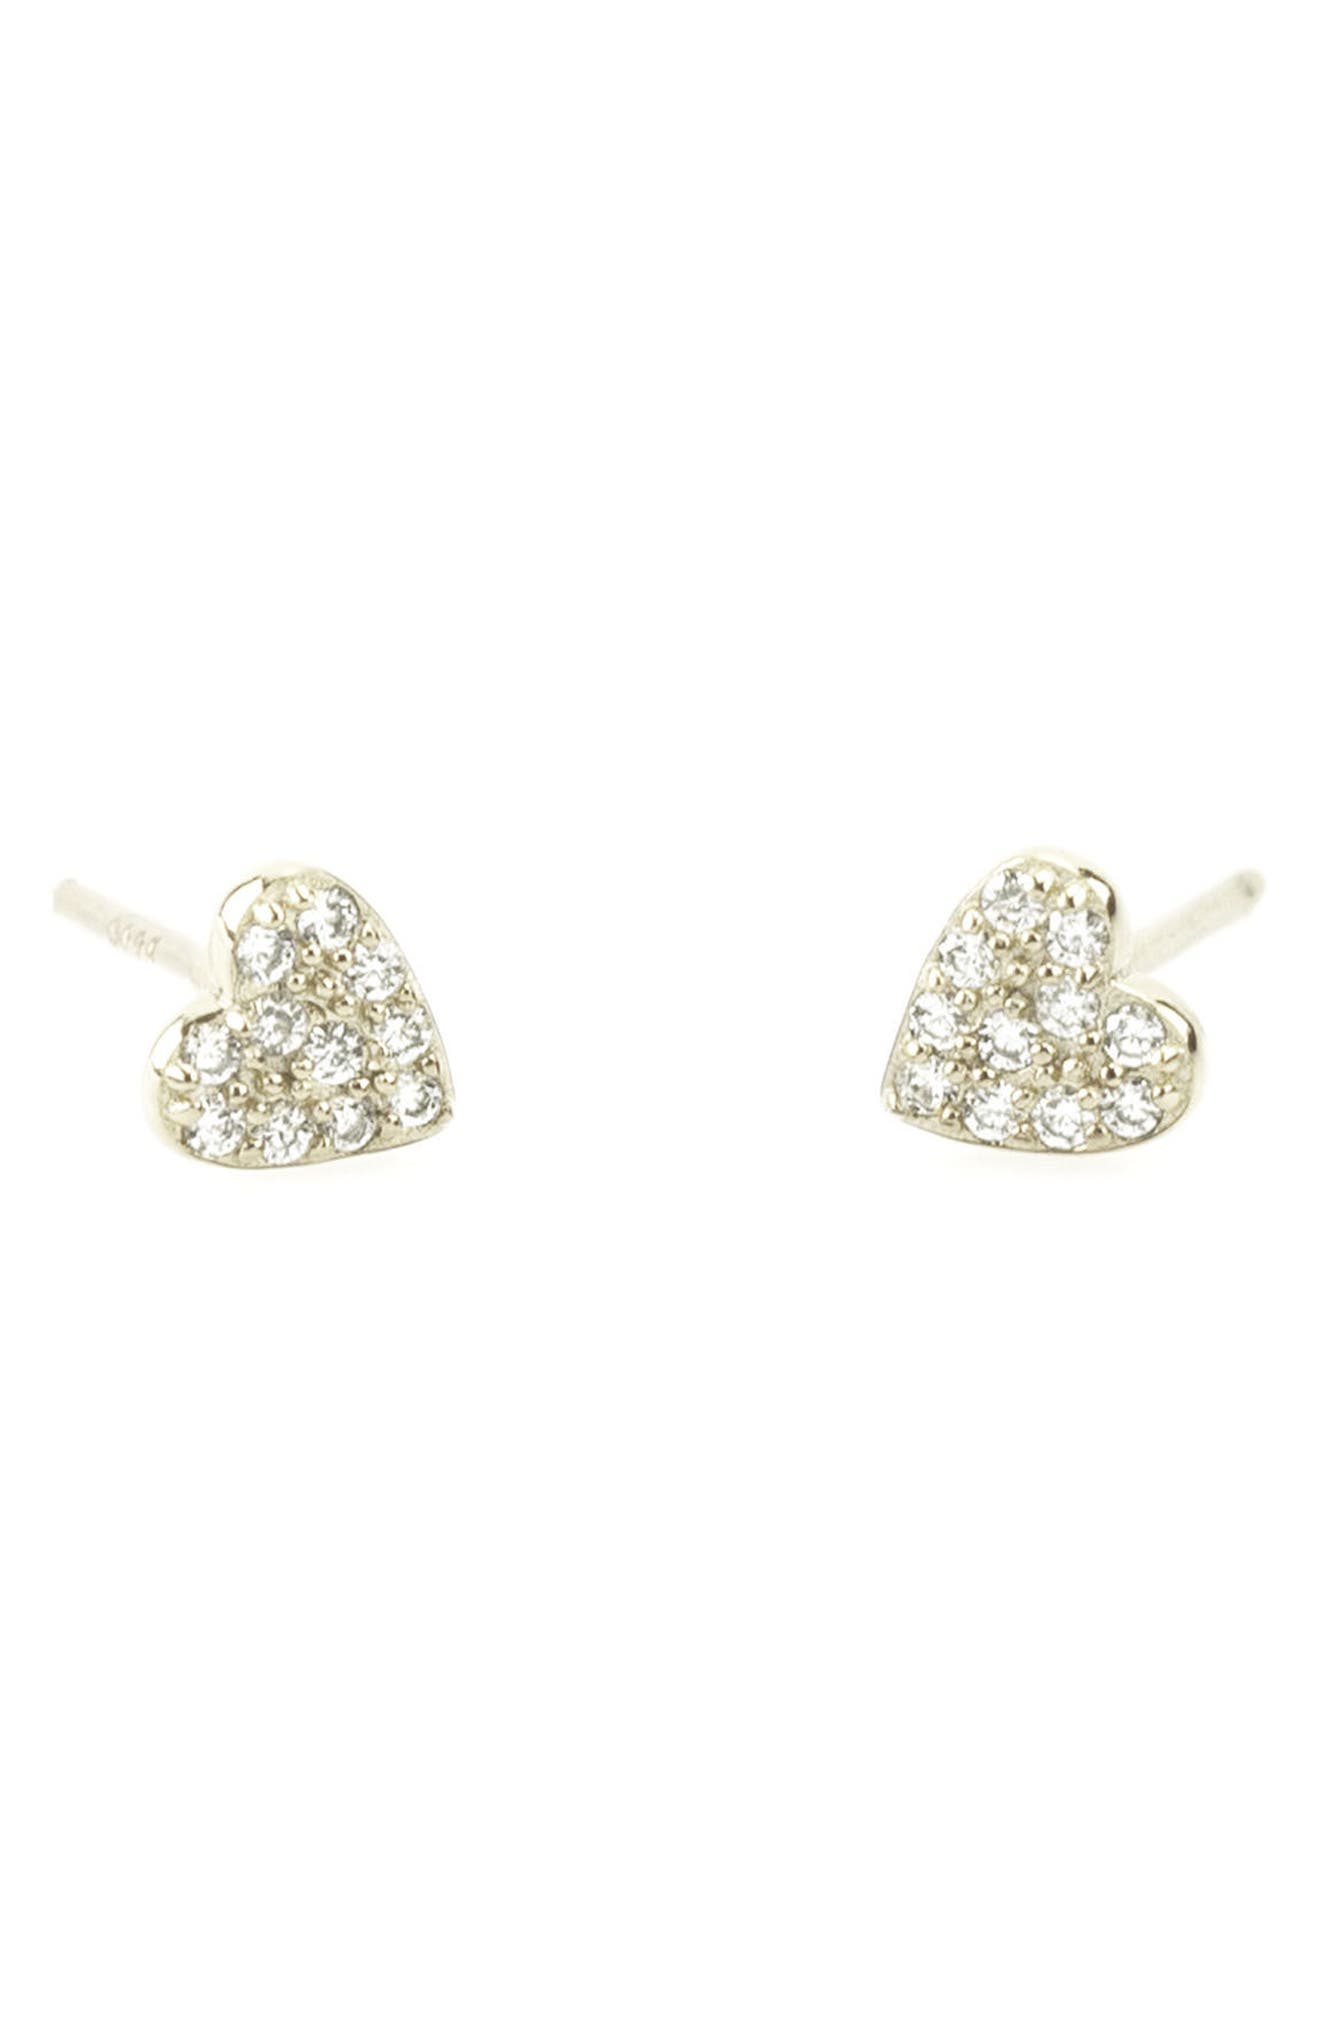 Kris Nations Pavé Heart Stud Earrings